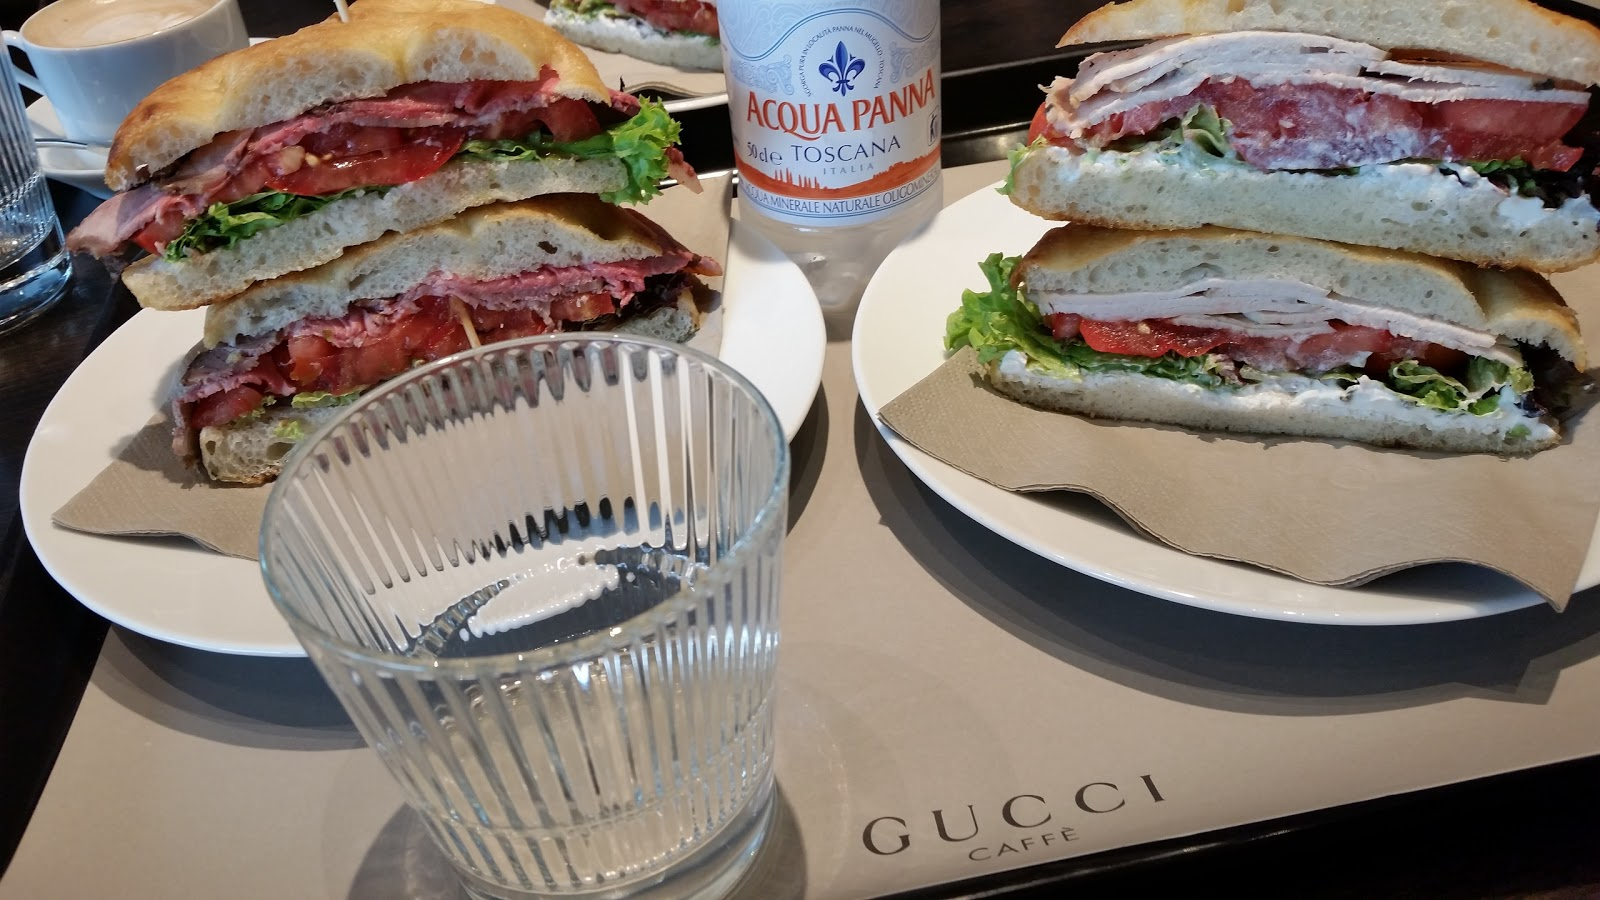 Lunch at Gucci Firenze